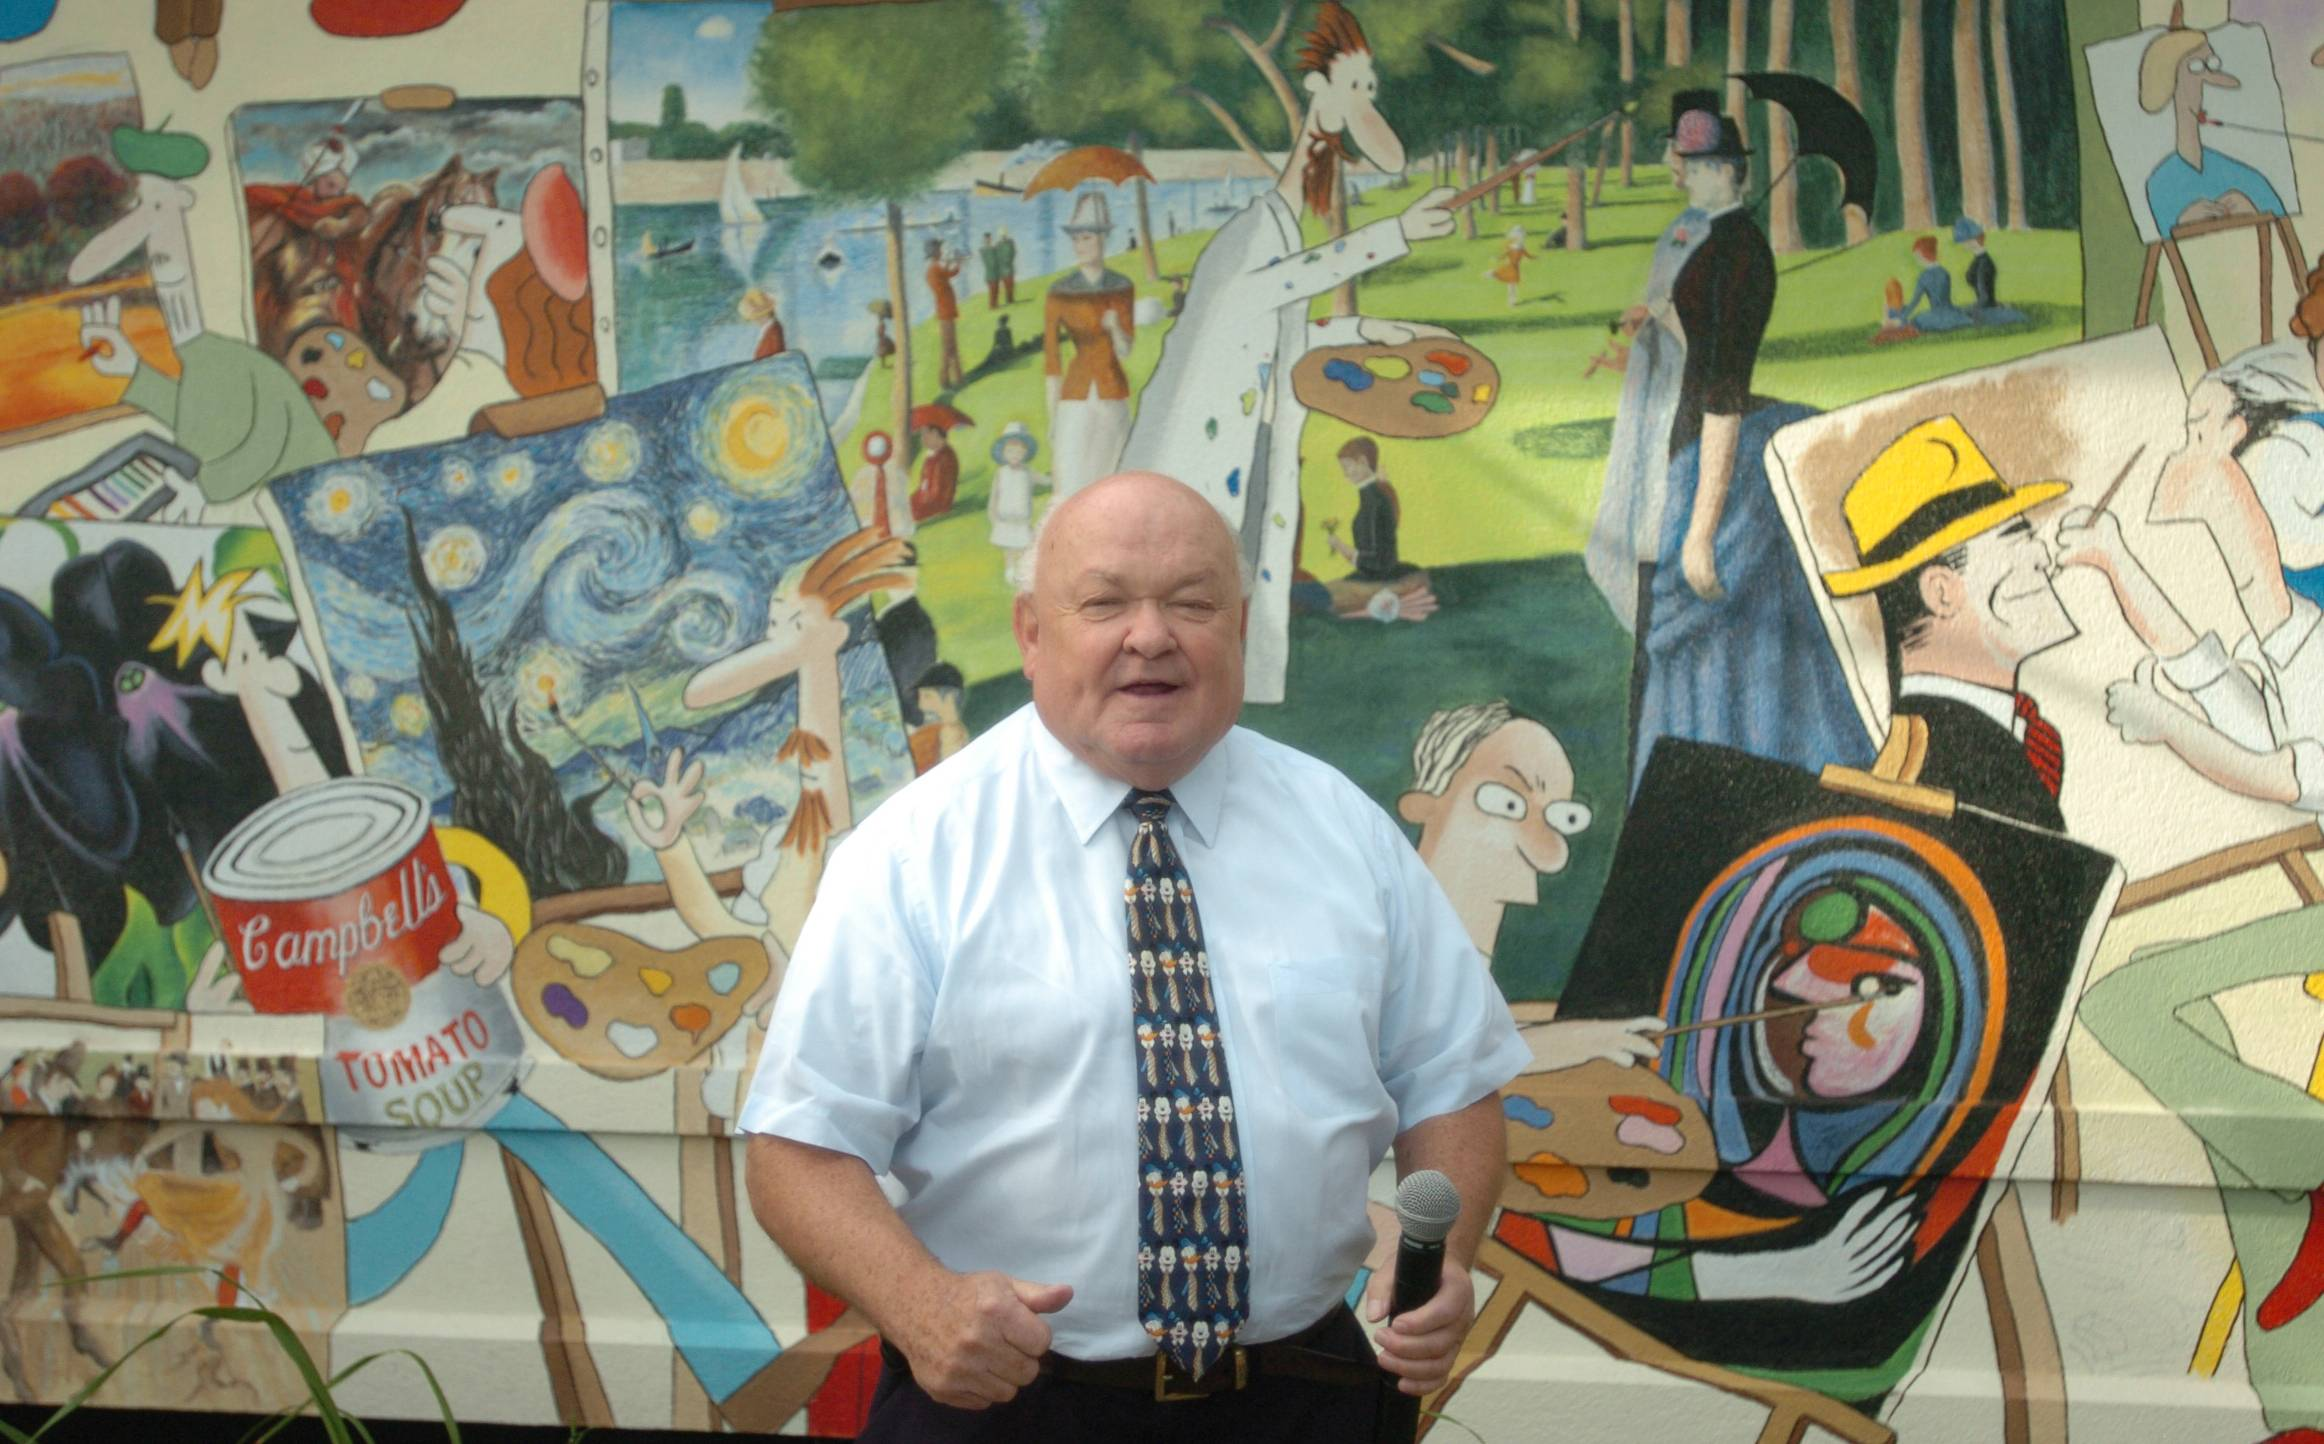 Pradel was a supporter of the arts, and area artists repaid the compliment by featuring him in murals and a sculpture.